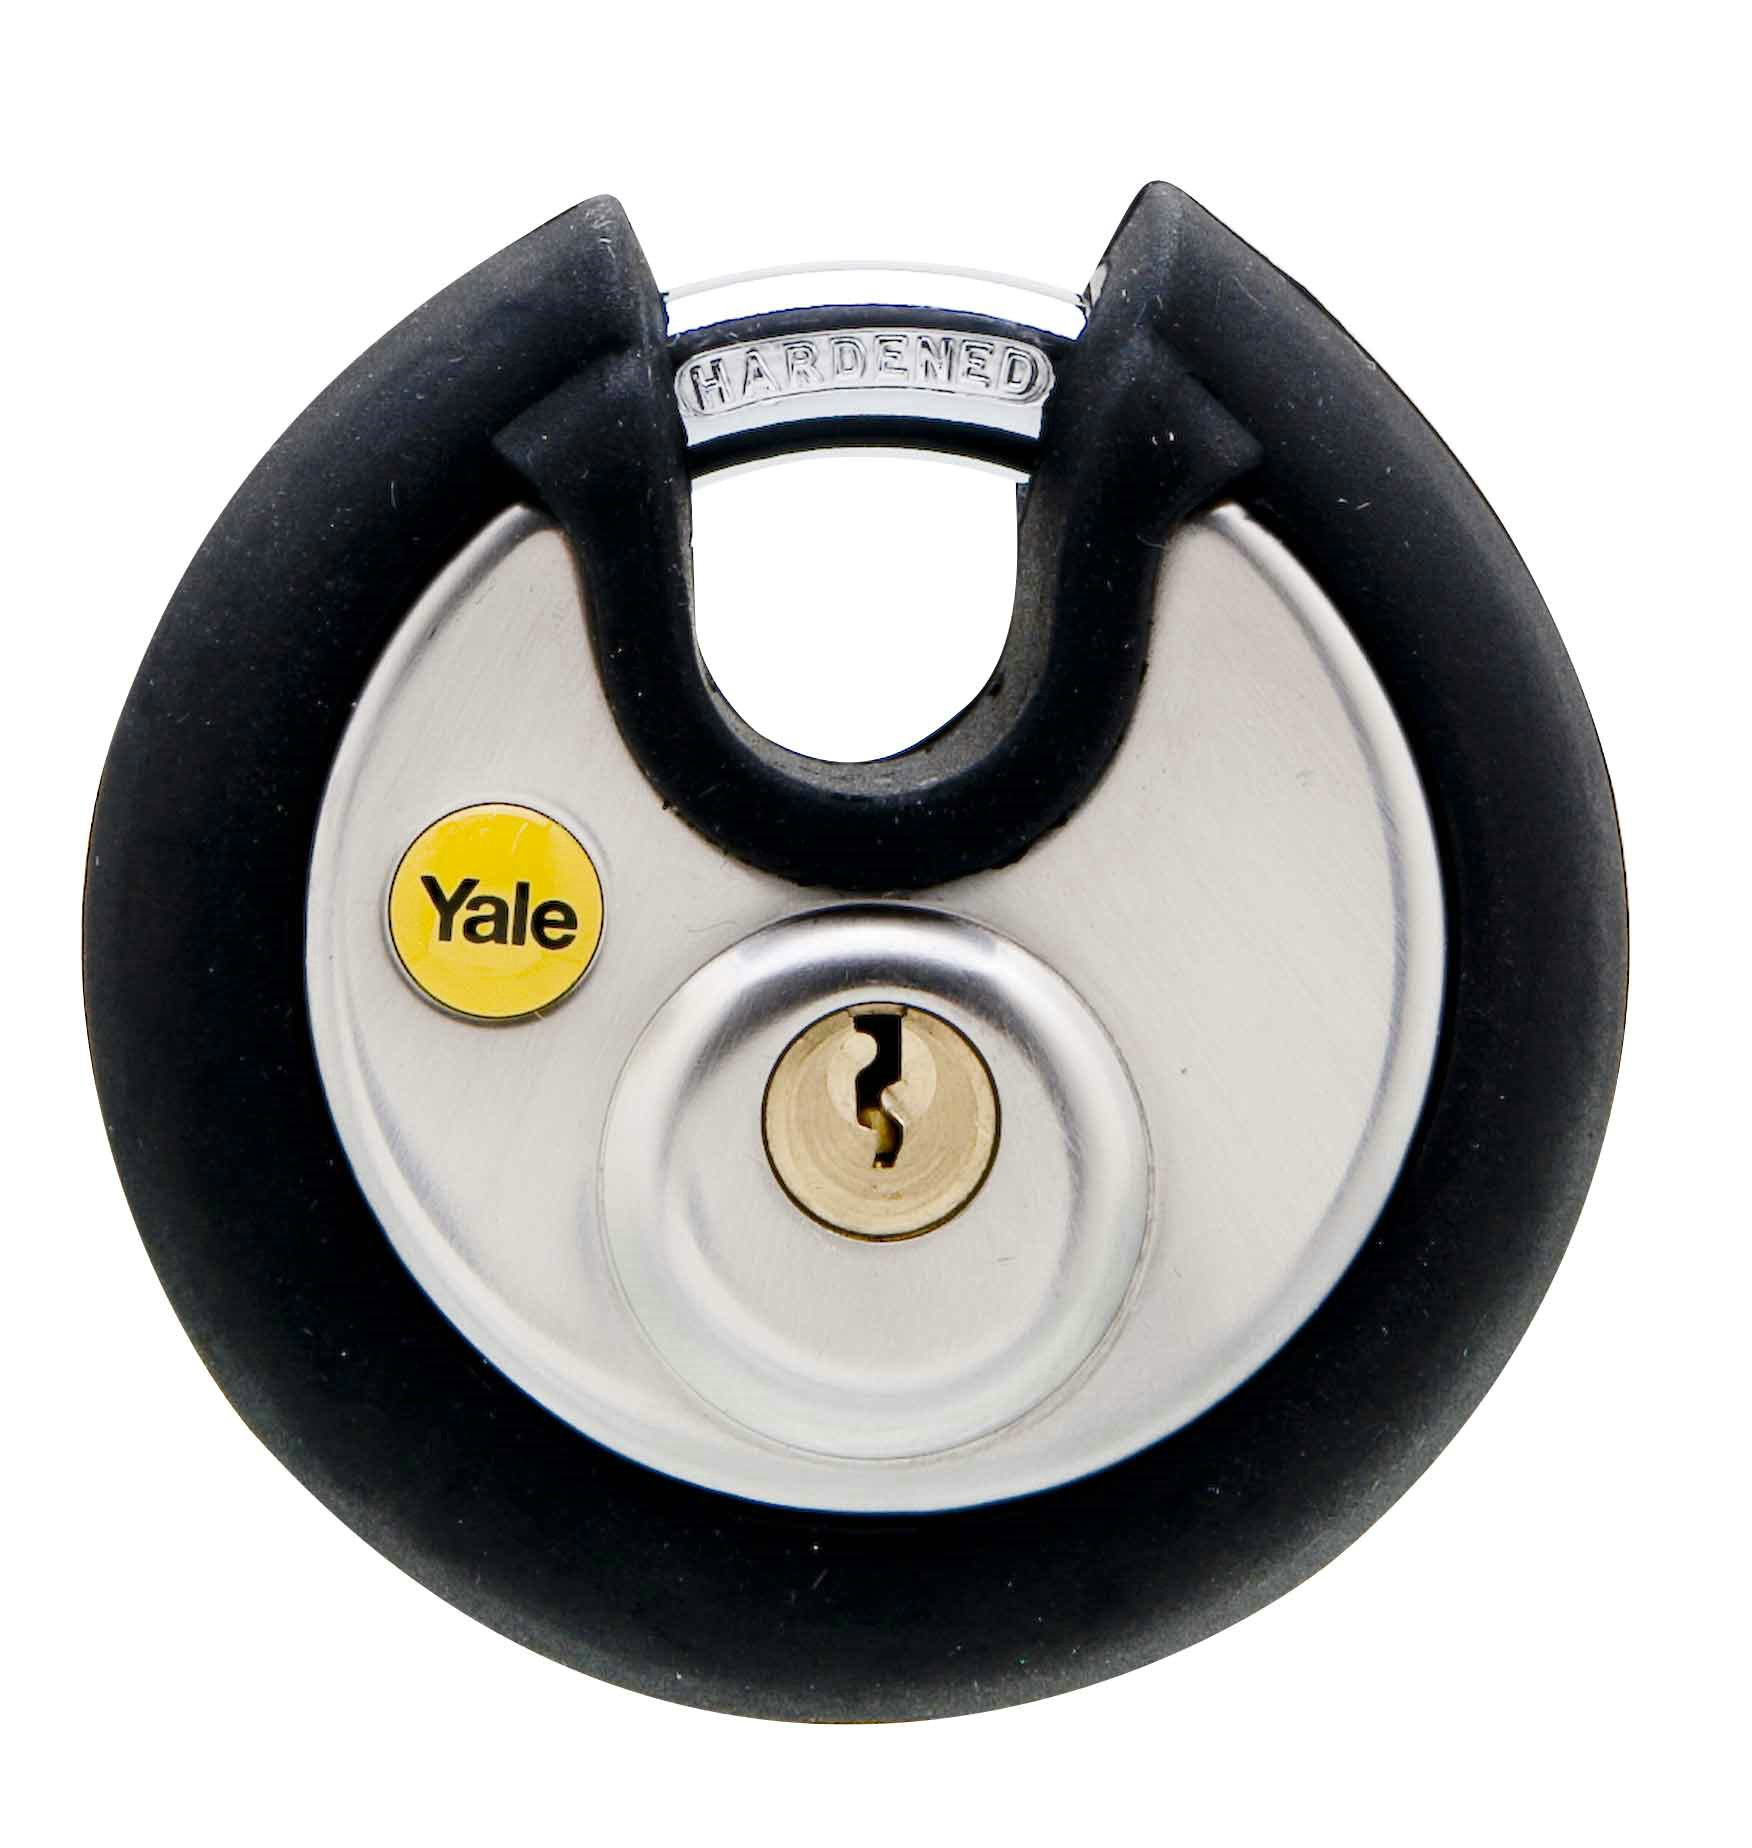 Y130P - Yale protector discuss padlock 70mm